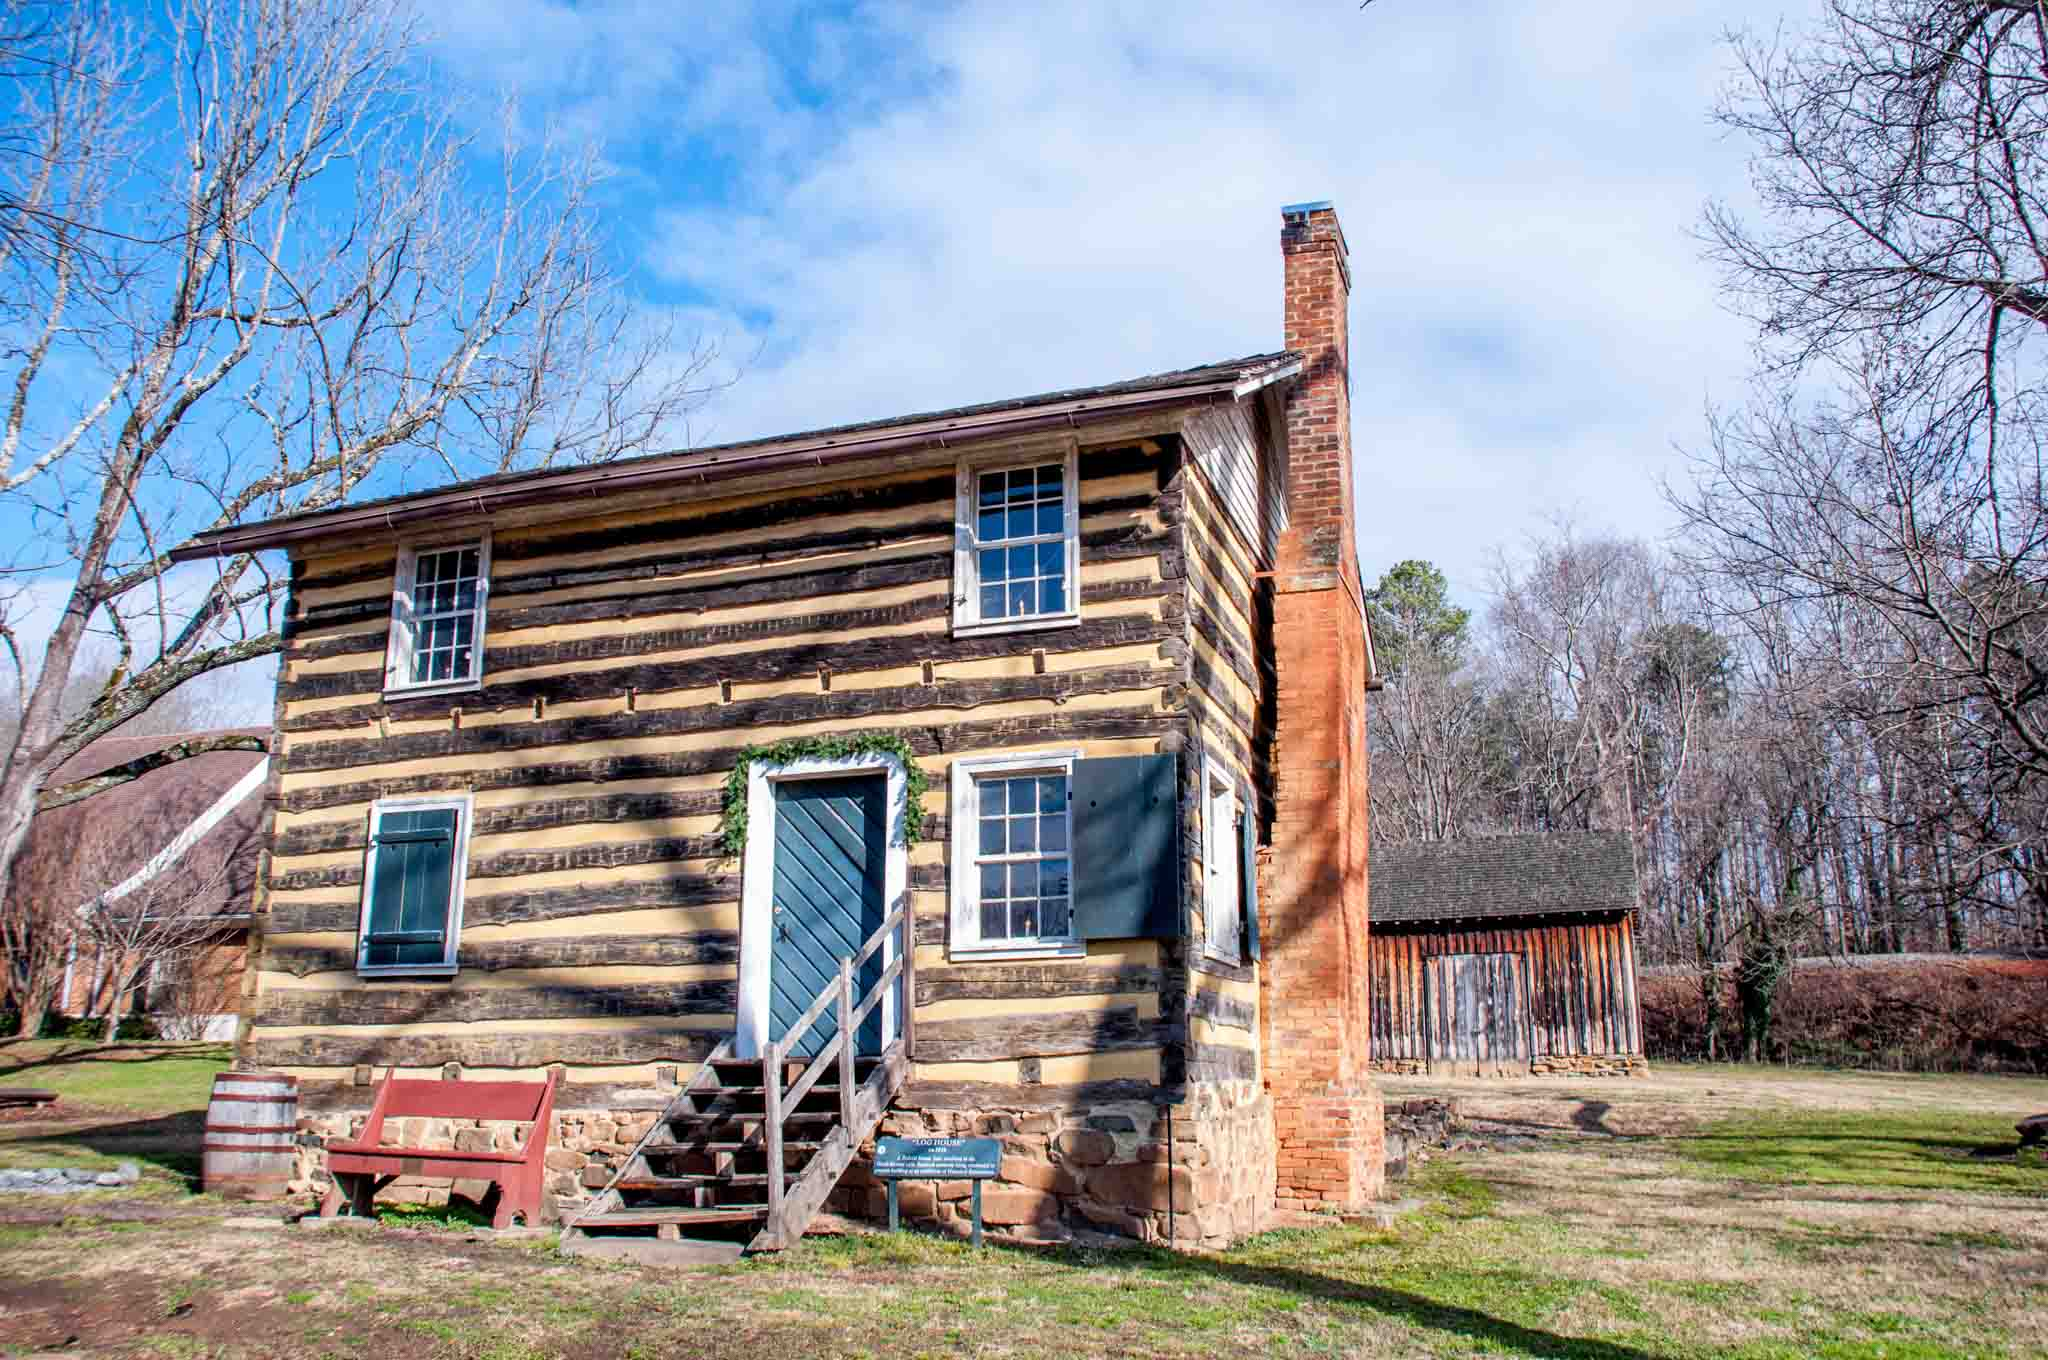 Log house with fur windows at the Bethabara Historic District